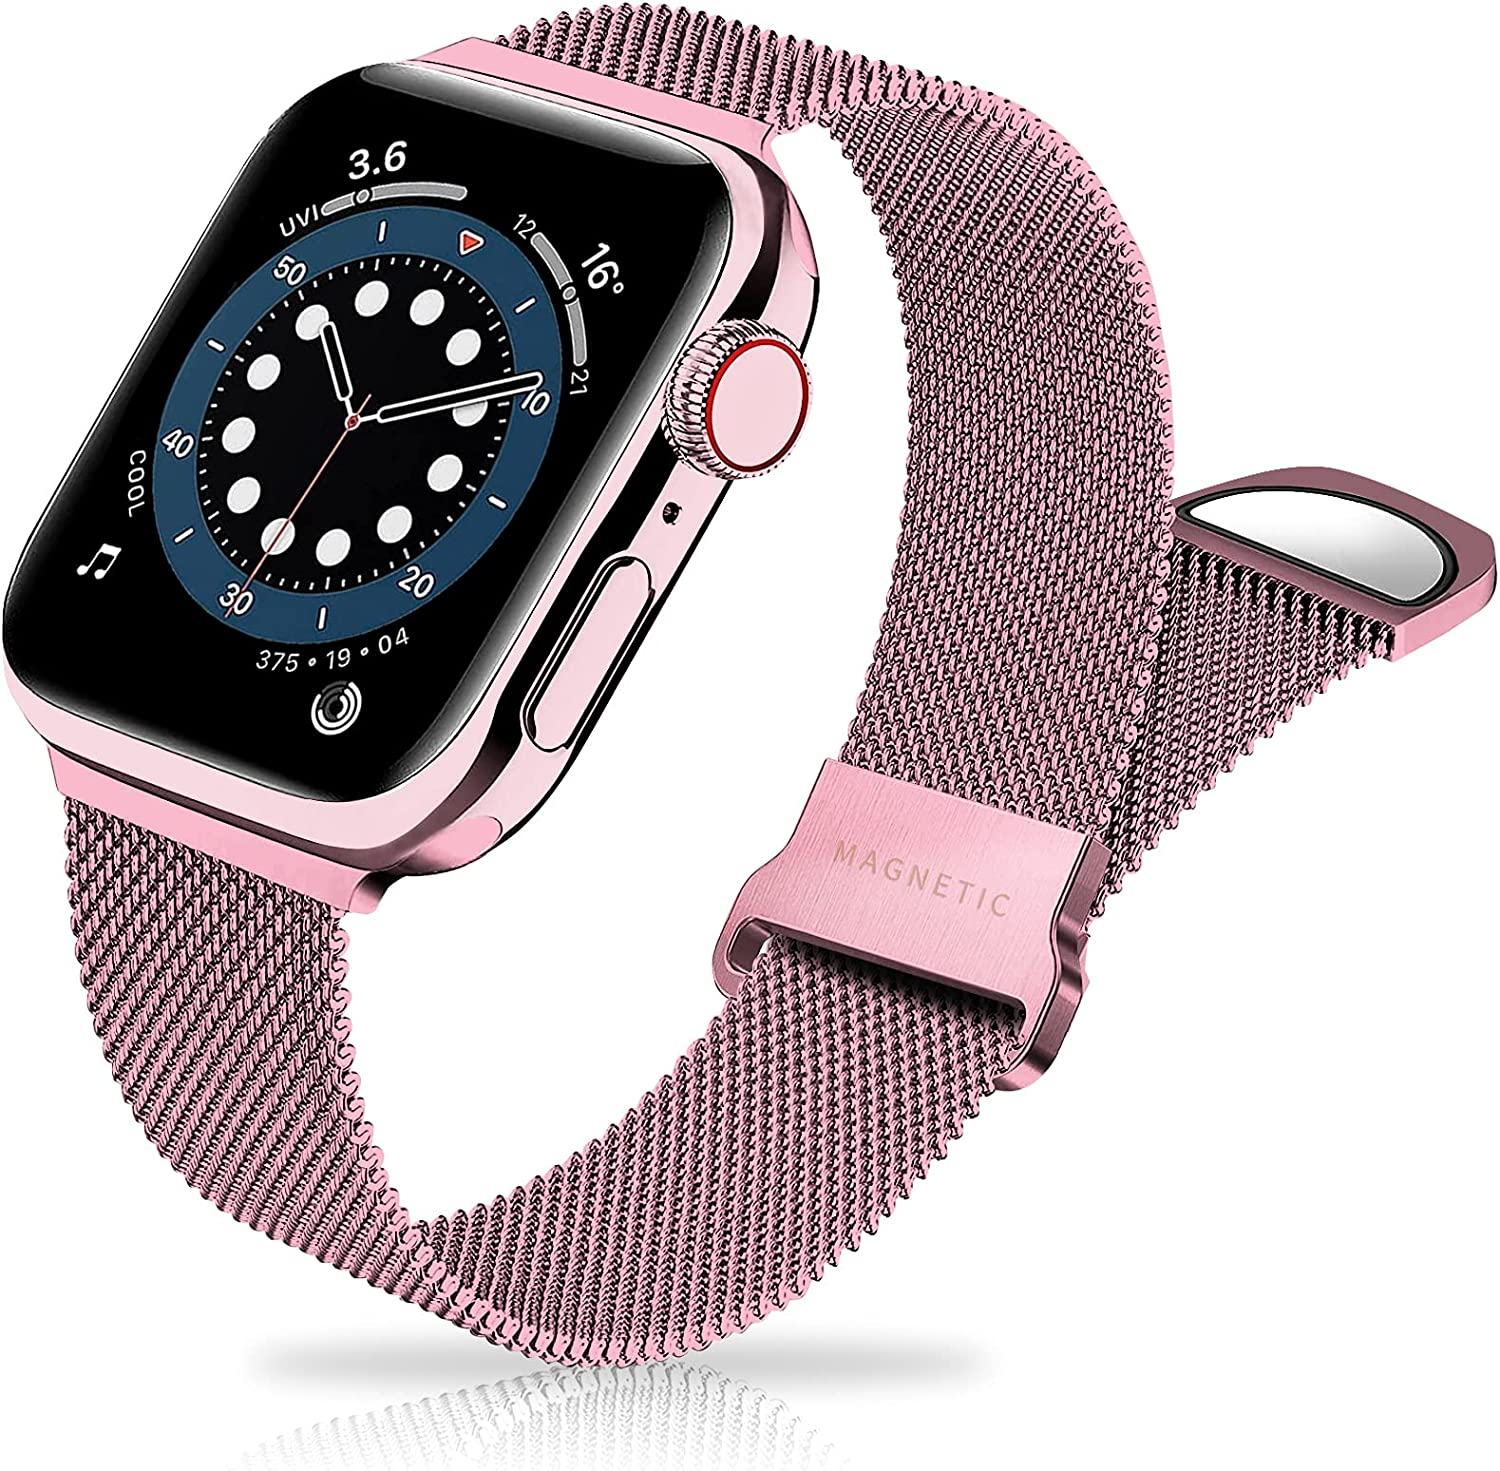 Metal Band Stainless Steel Mesh Magnetic Compatible with Apple Watch Bands 38mm 40mm 42mm 44mm, Milanese Sport Clasp Loop Women Men Compatible for iWatch Series SE/6/5/4/3/2/1